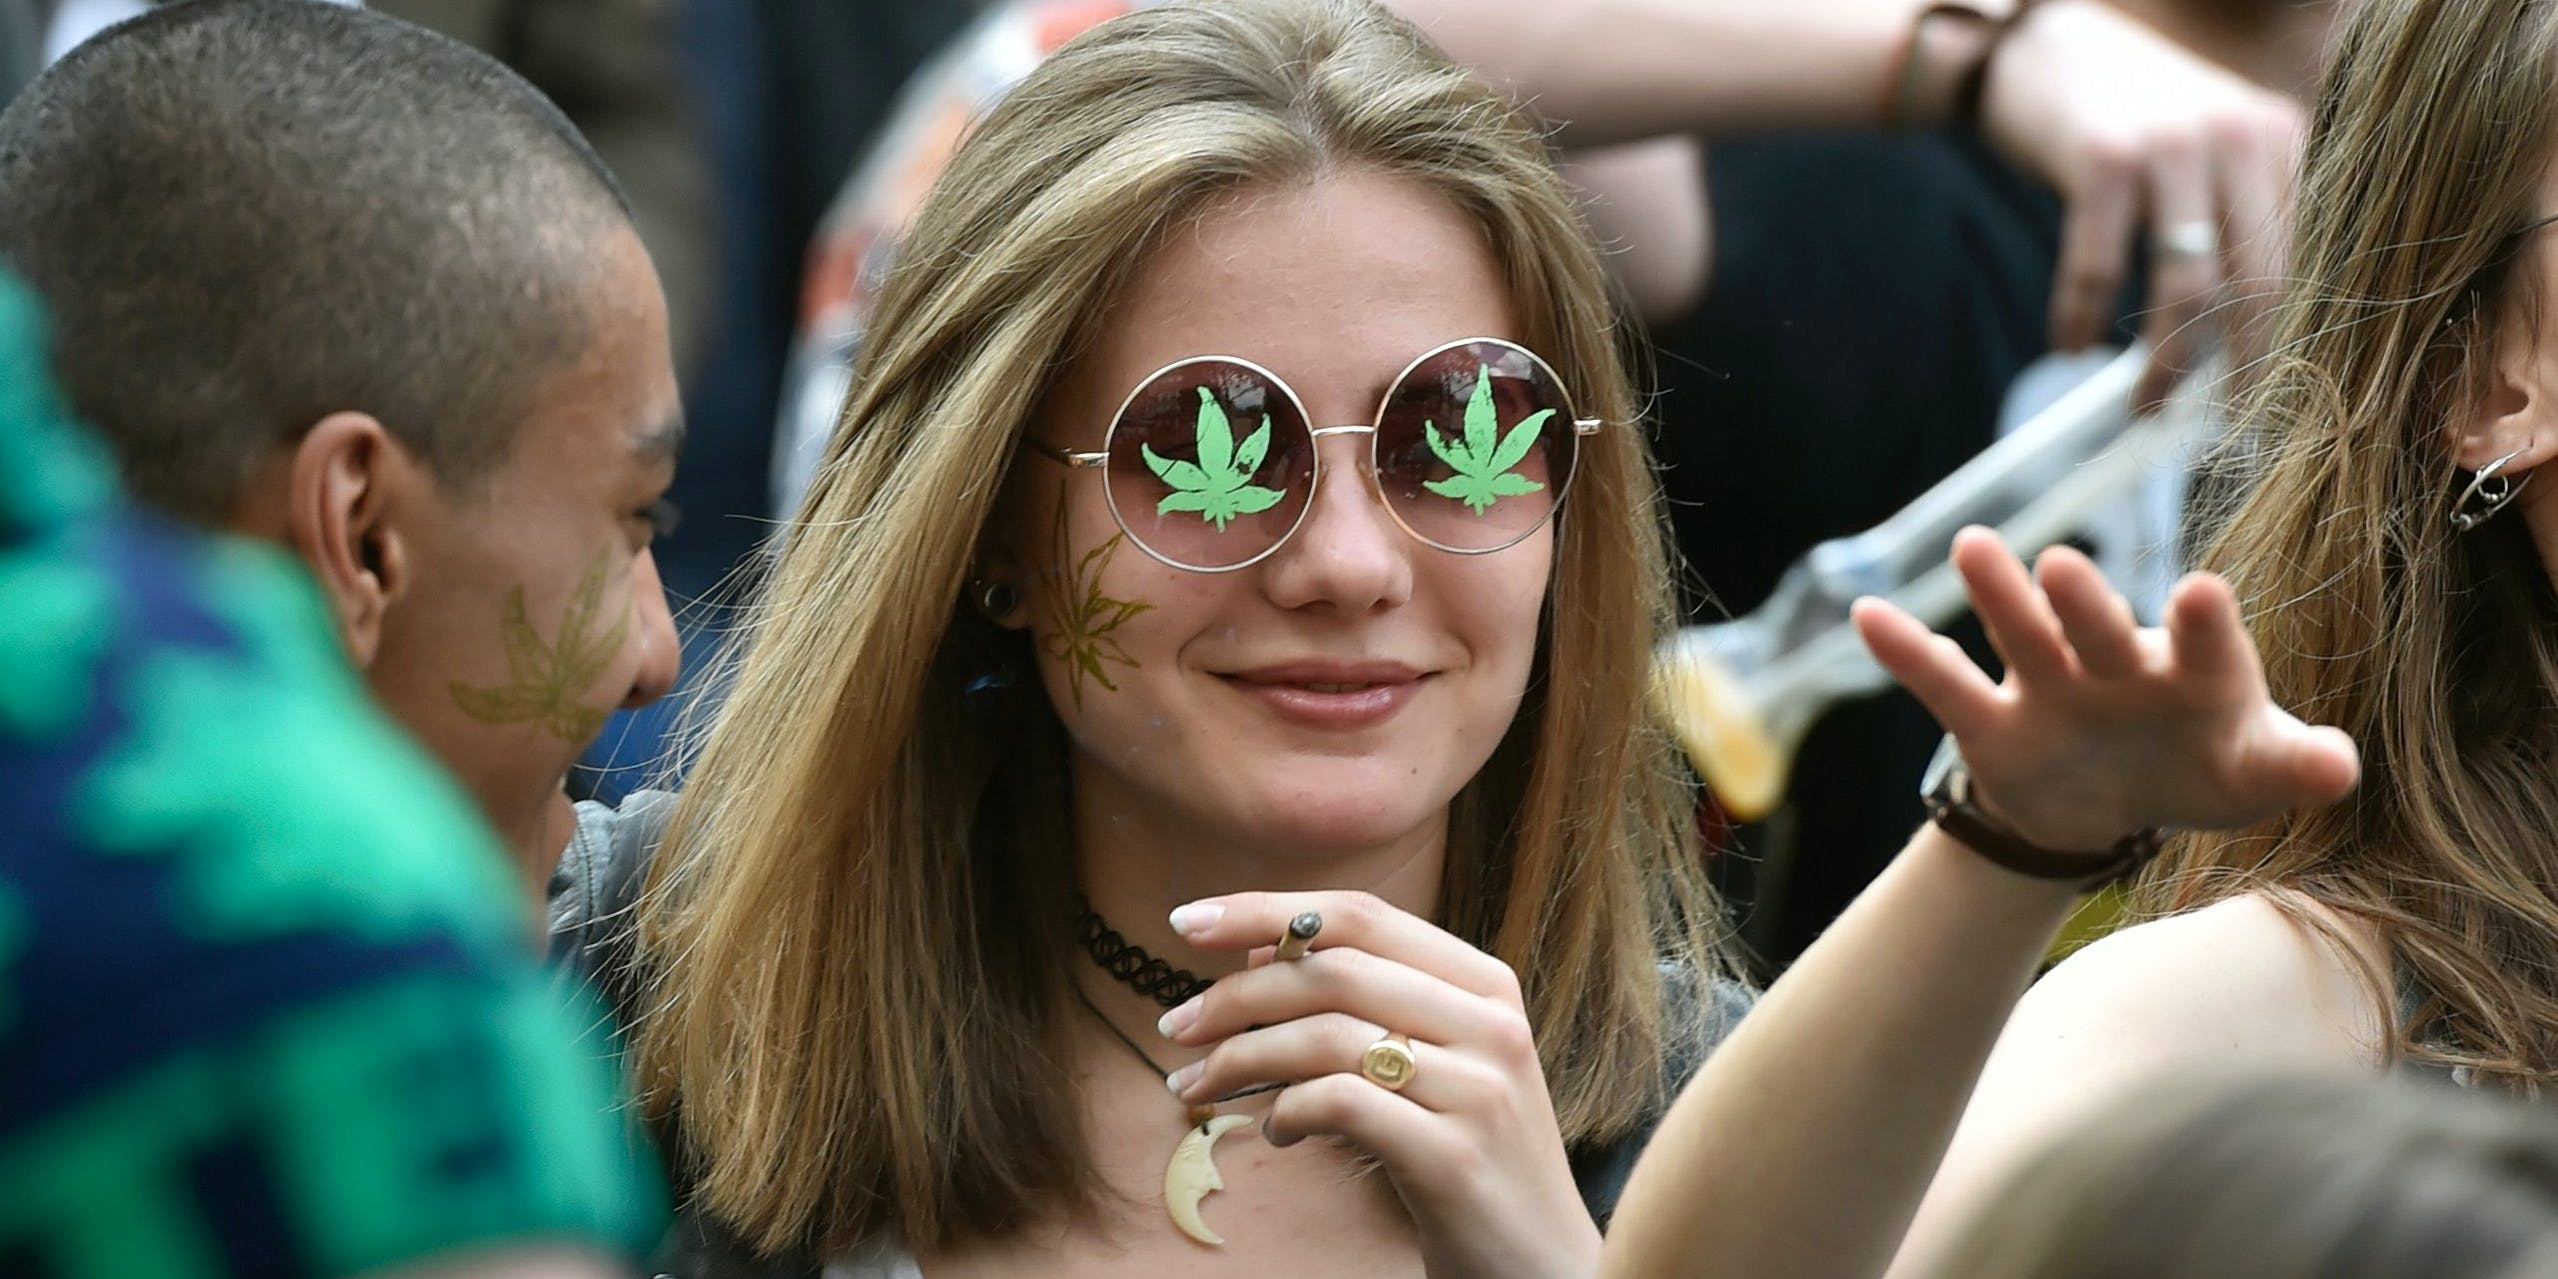 A young woman smokes in Paris on April 29, 2017, during the 16th annual Marche Mondiale du Cannabis to call for the legalization of cannabis. A recent survey found millennials smoke weed way more than their parents. (Photo by Alain Jocard/AFP via Getty images)